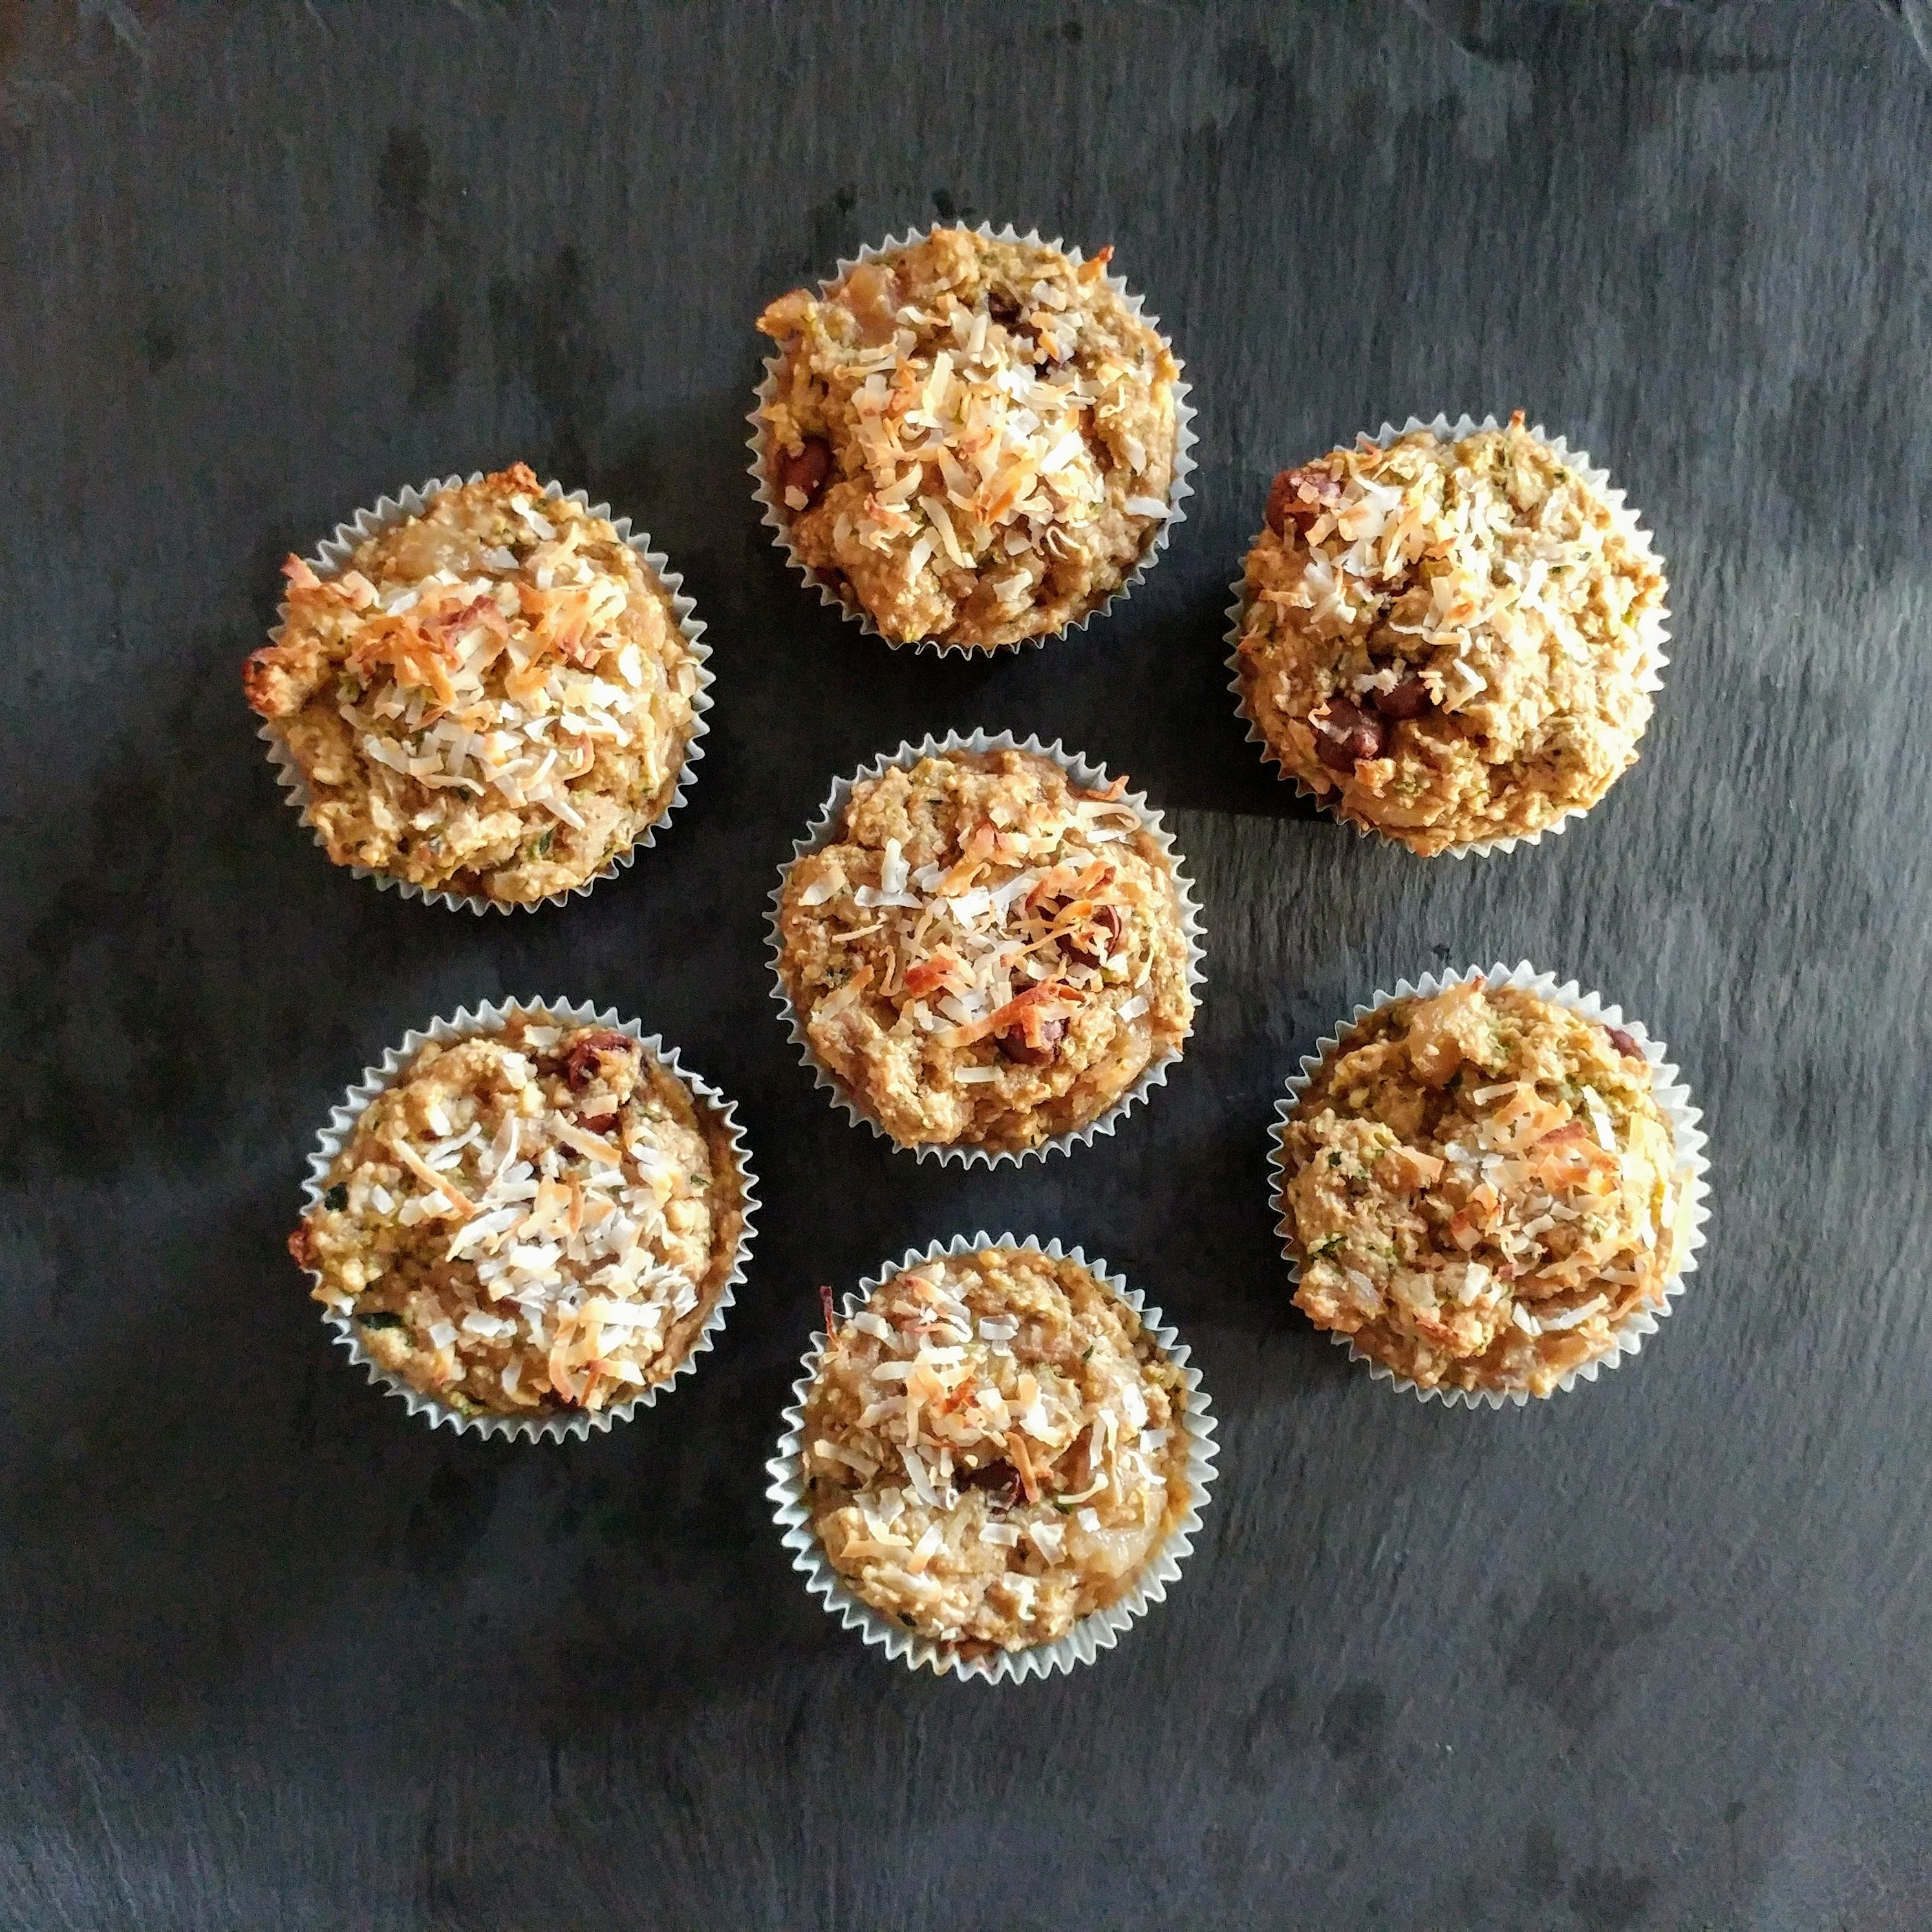 Vegan Energy Muffins: Packed with Zucchini, Bananas, and Walnuts